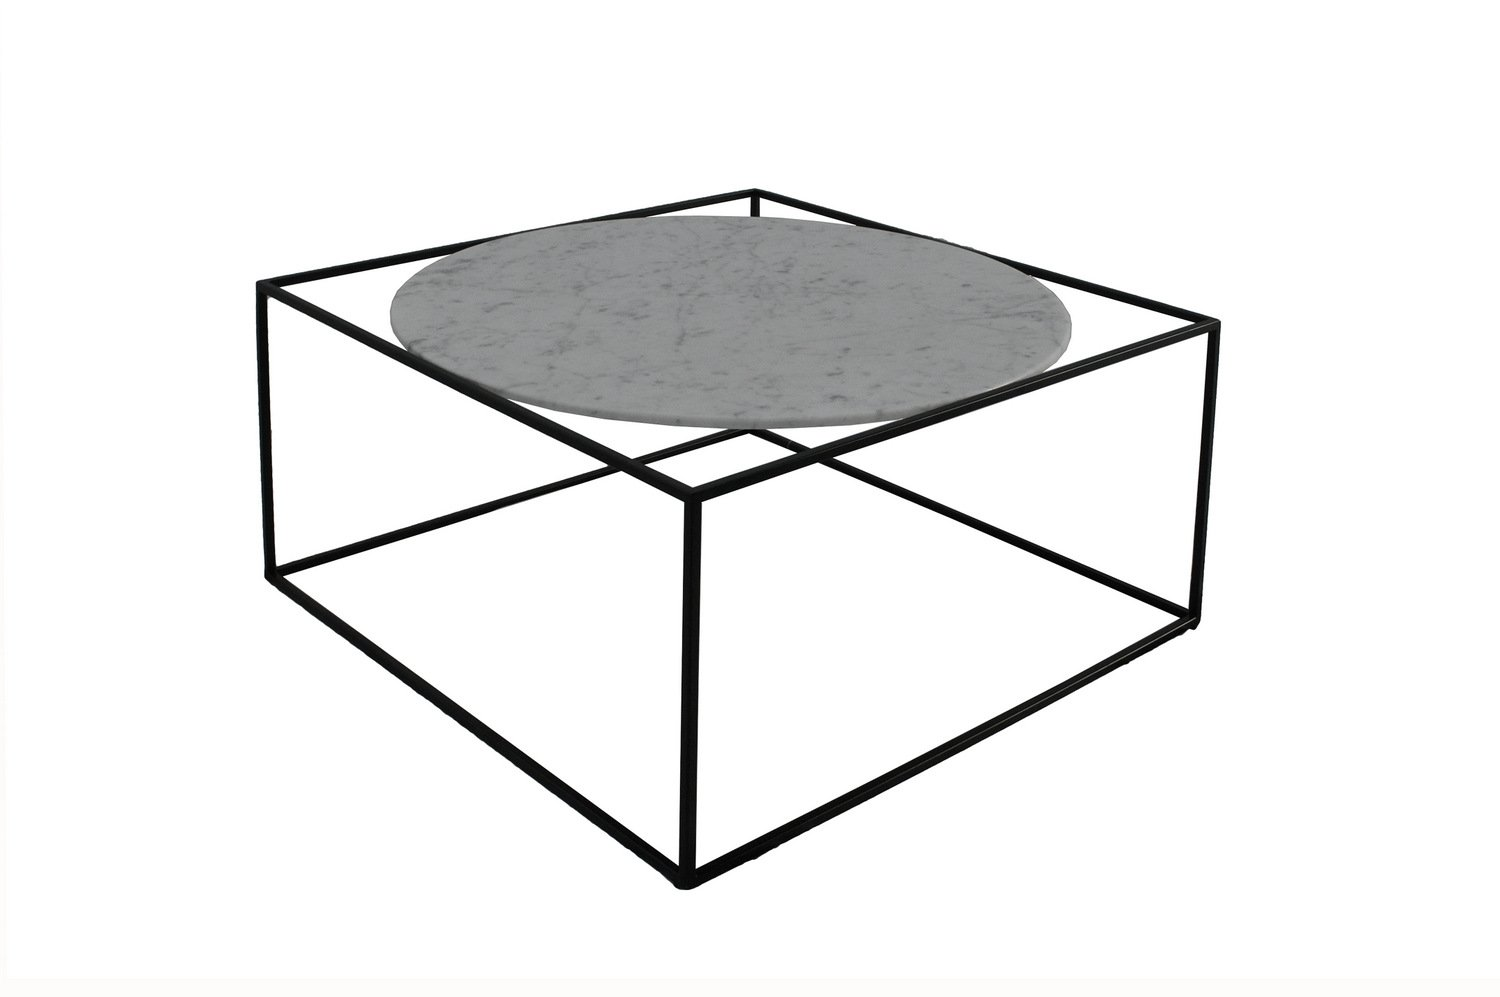 G3 marble coffee table by roche bobois design johan lindst n Roche bobois coffee table